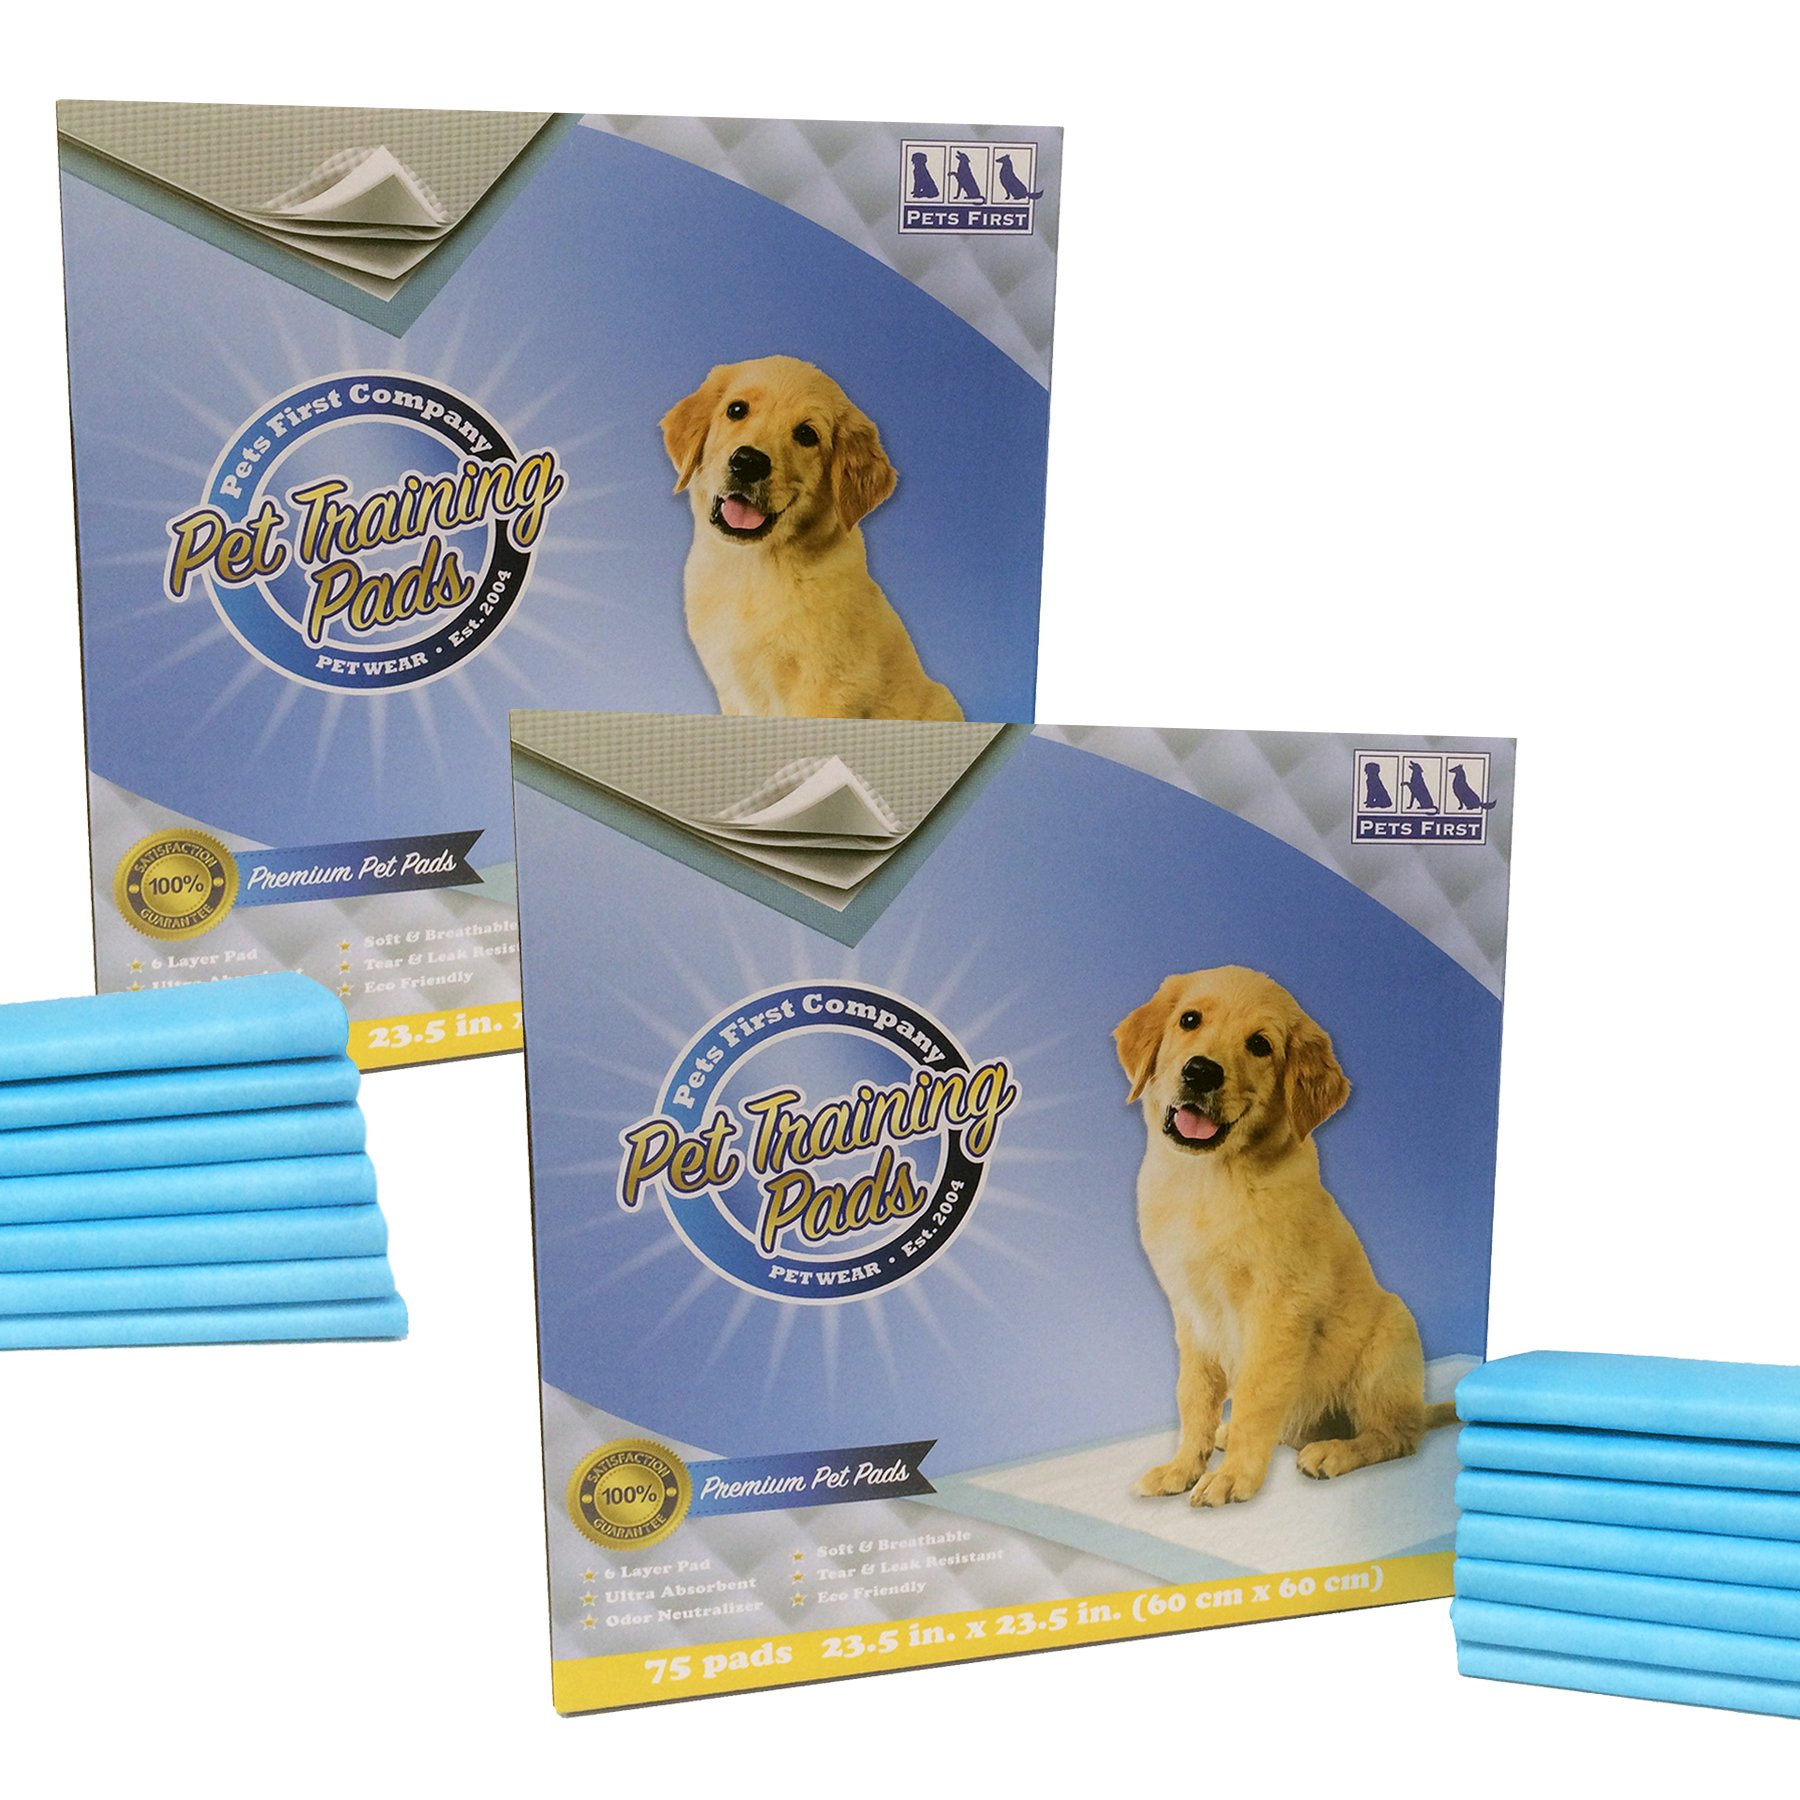 Premium Training Pads (150 Count) Newest Version - Most Absorbent Puppy Pads. Latest Tech Dog Pee Pads